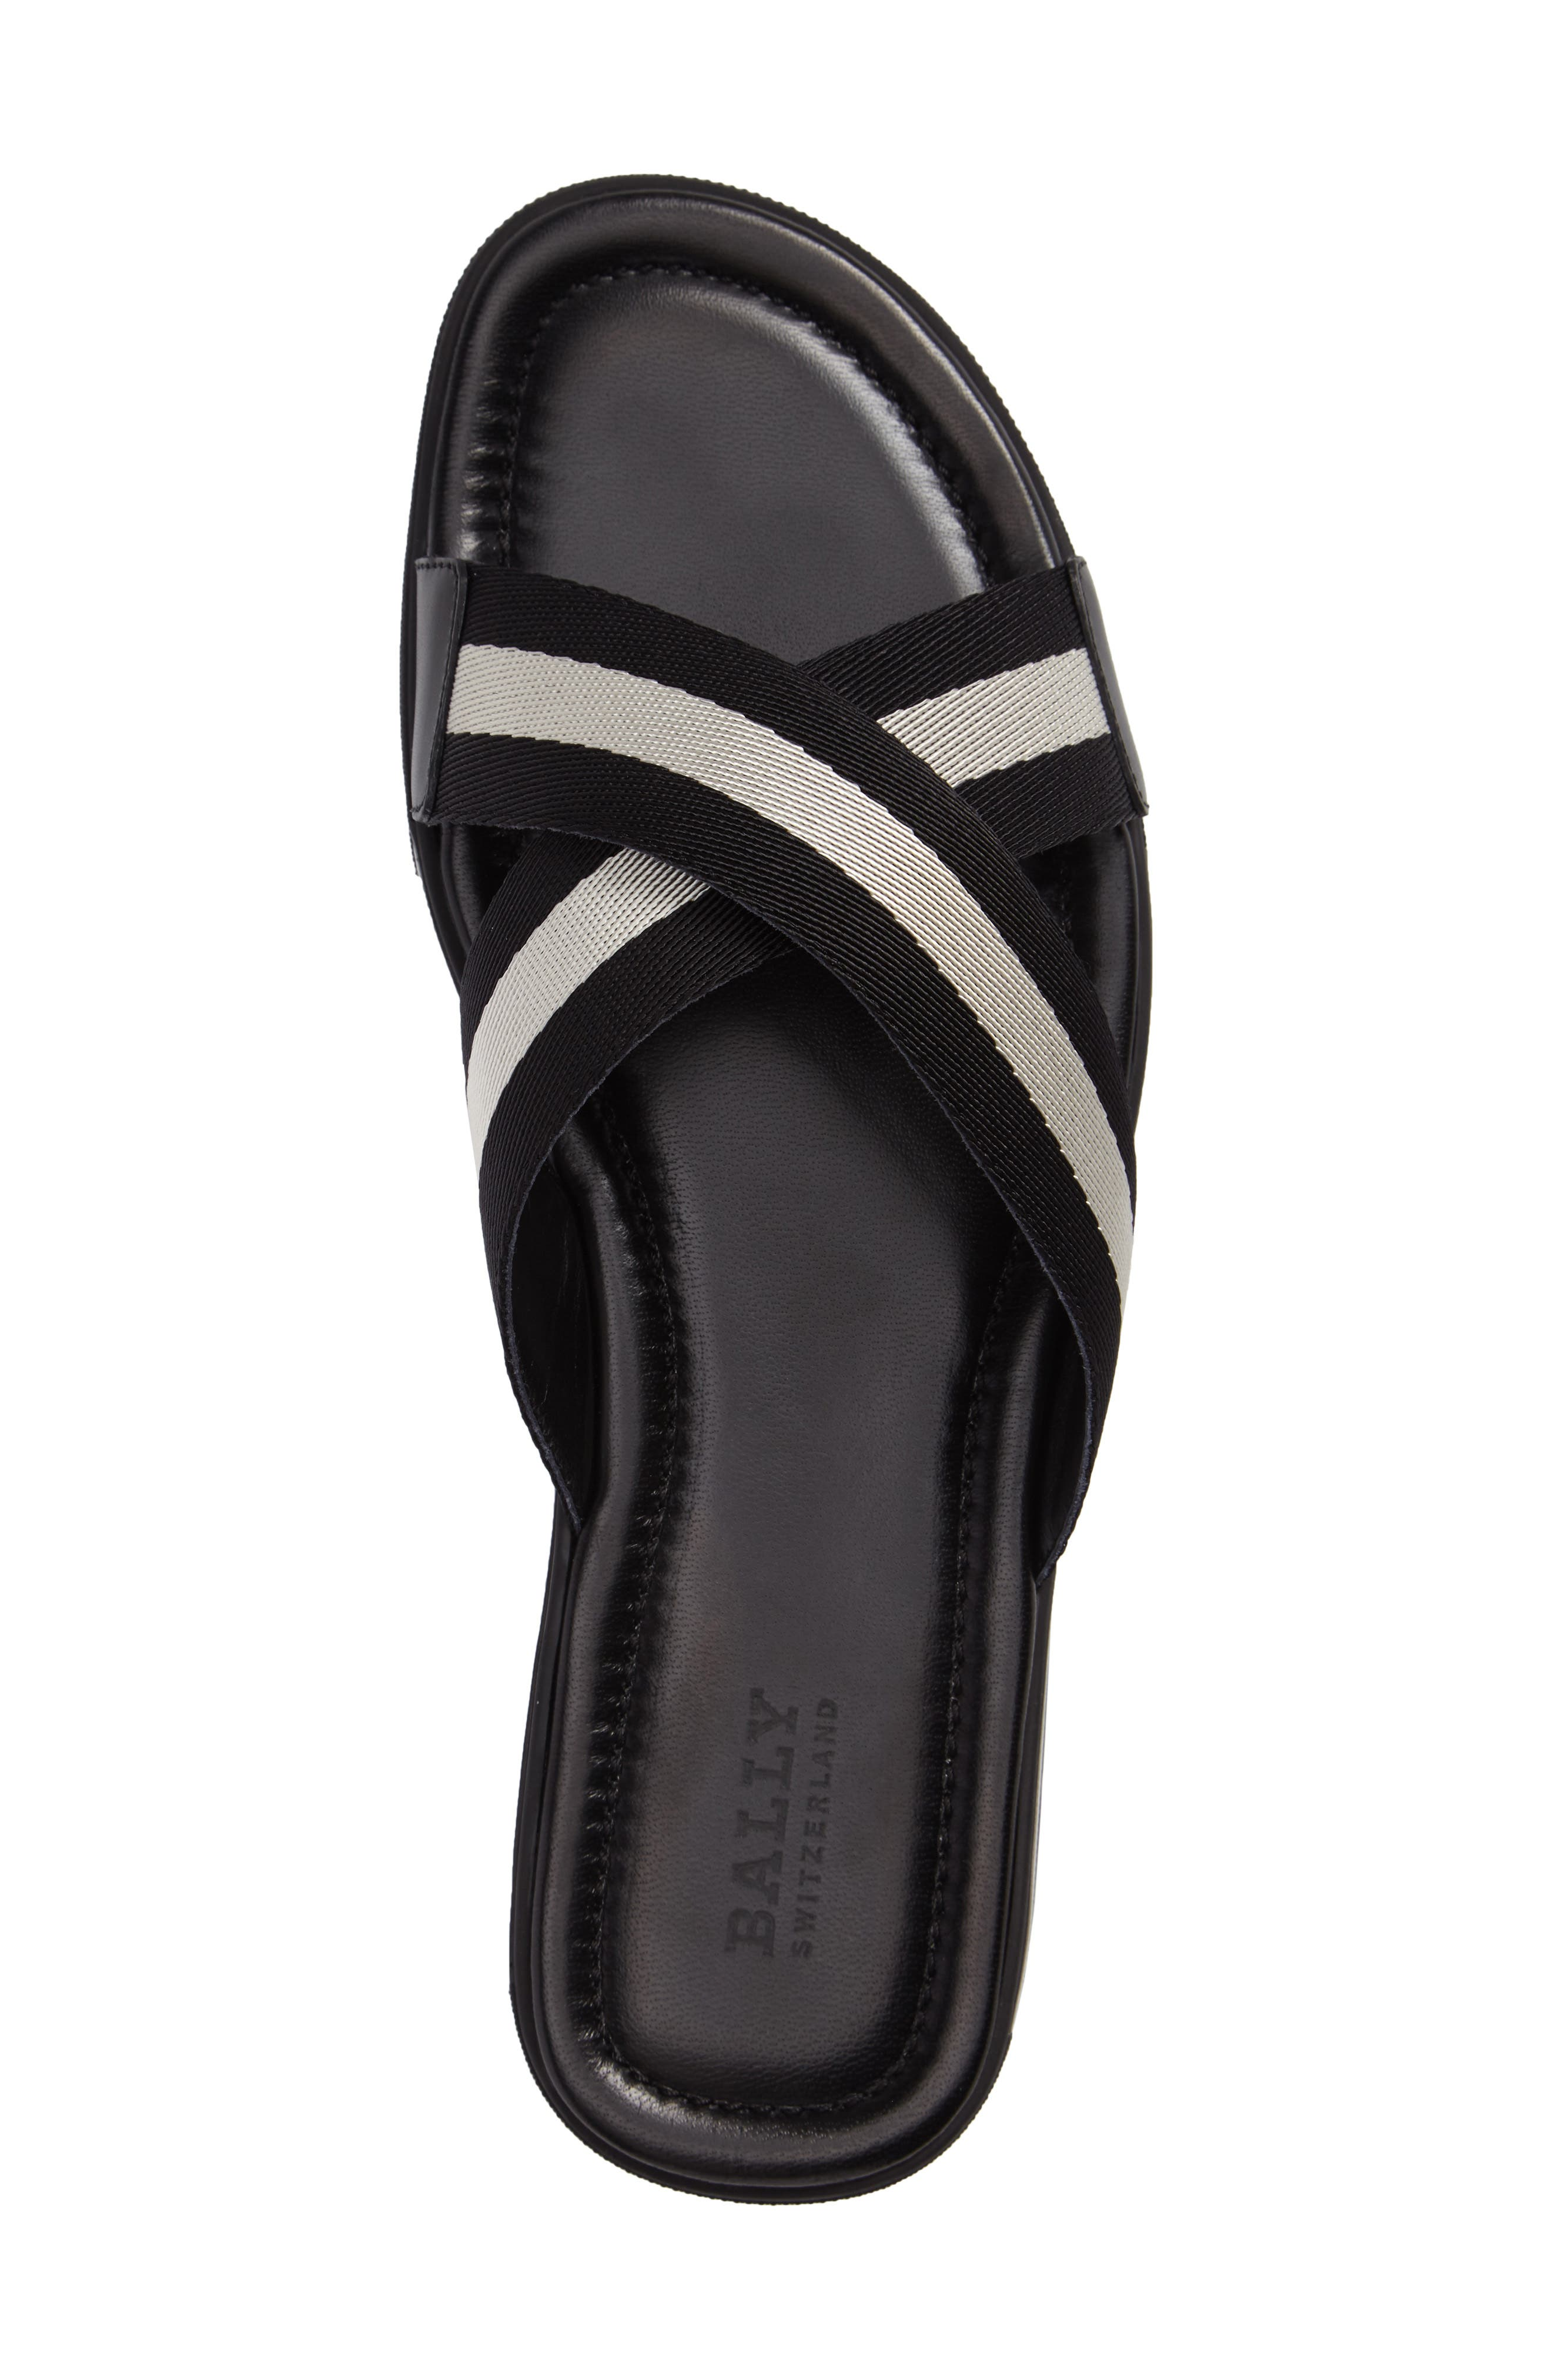 Bonks Slide Sandal,                             Alternate thumbnail 3, color,                             Black/ Bone